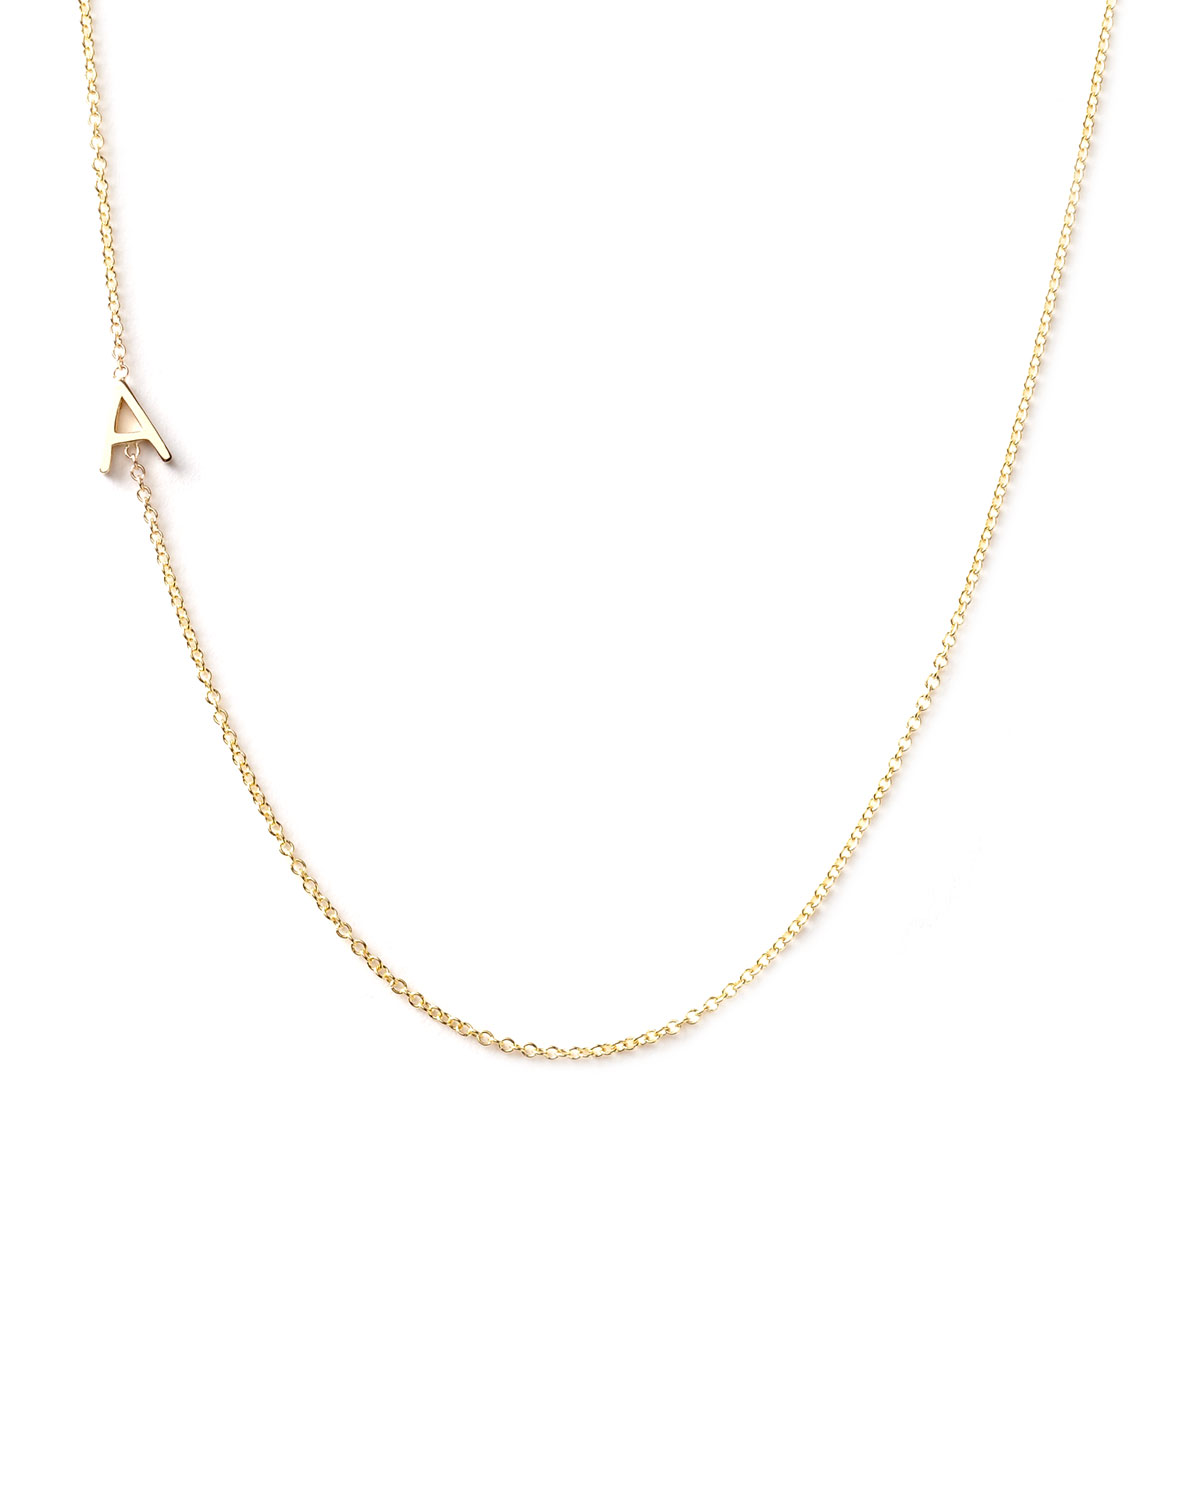 14k Yellow Gold Mini Letter Necklace, A - Maya Brenner Designs